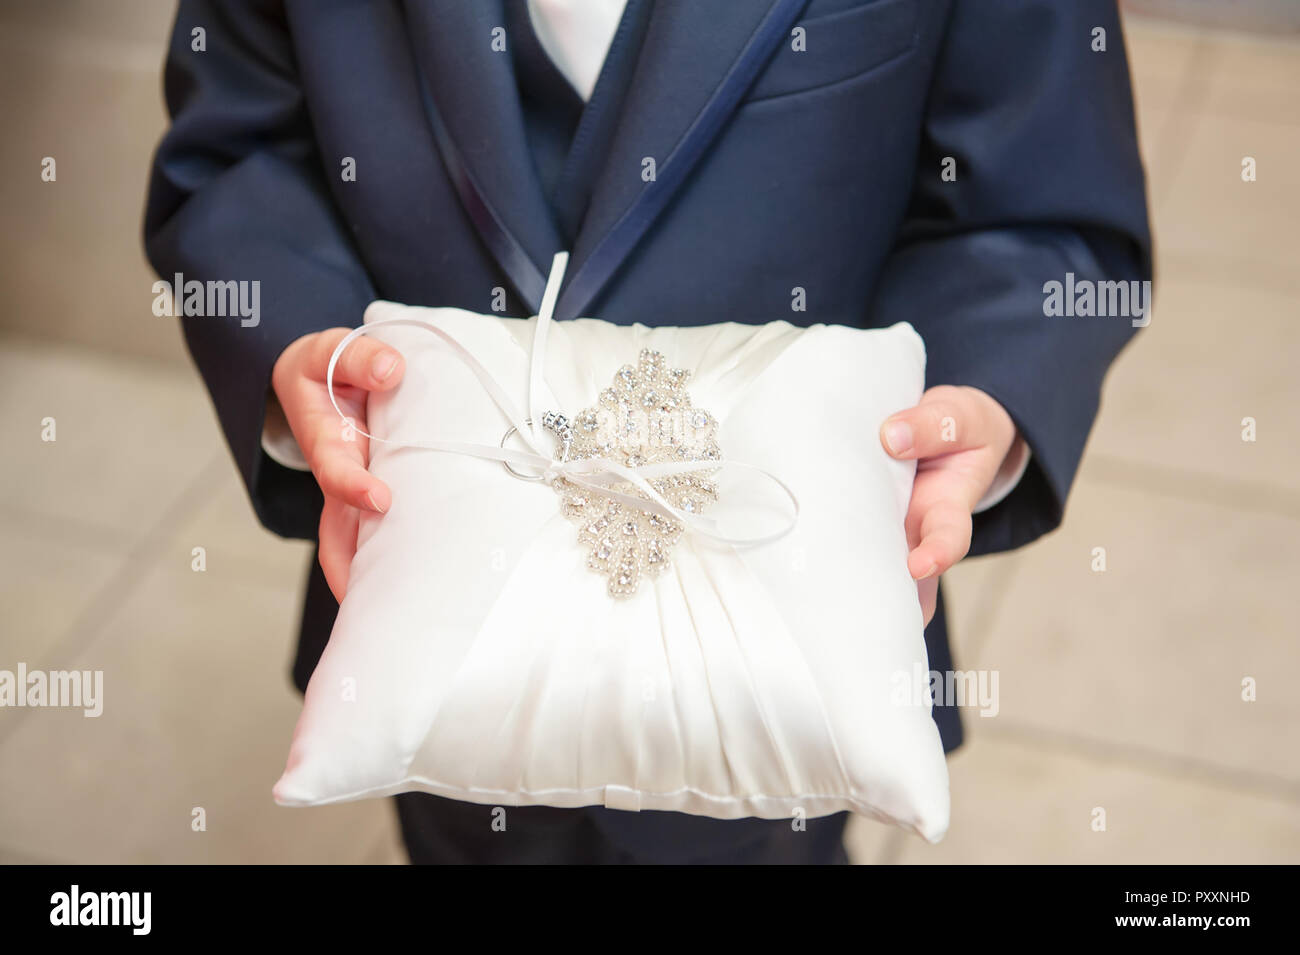 A young boy holds on to the pillow as part of his duties as ring bearer at a wedding. Stock Photo